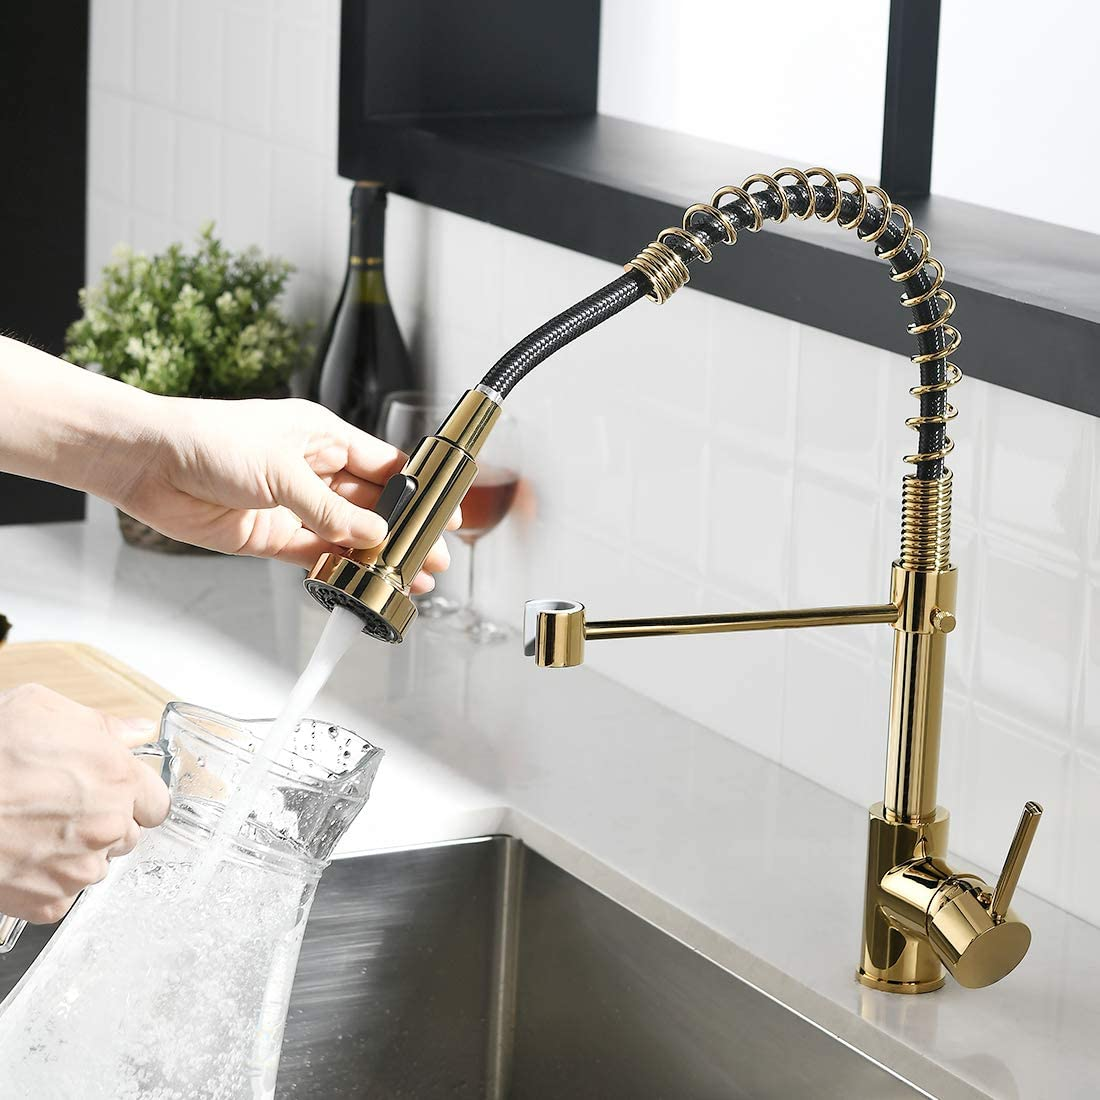 Fapully Gold Kitchen Faucet with Sprayer,Pull Down Single Handle Kitchen Sink Faucet